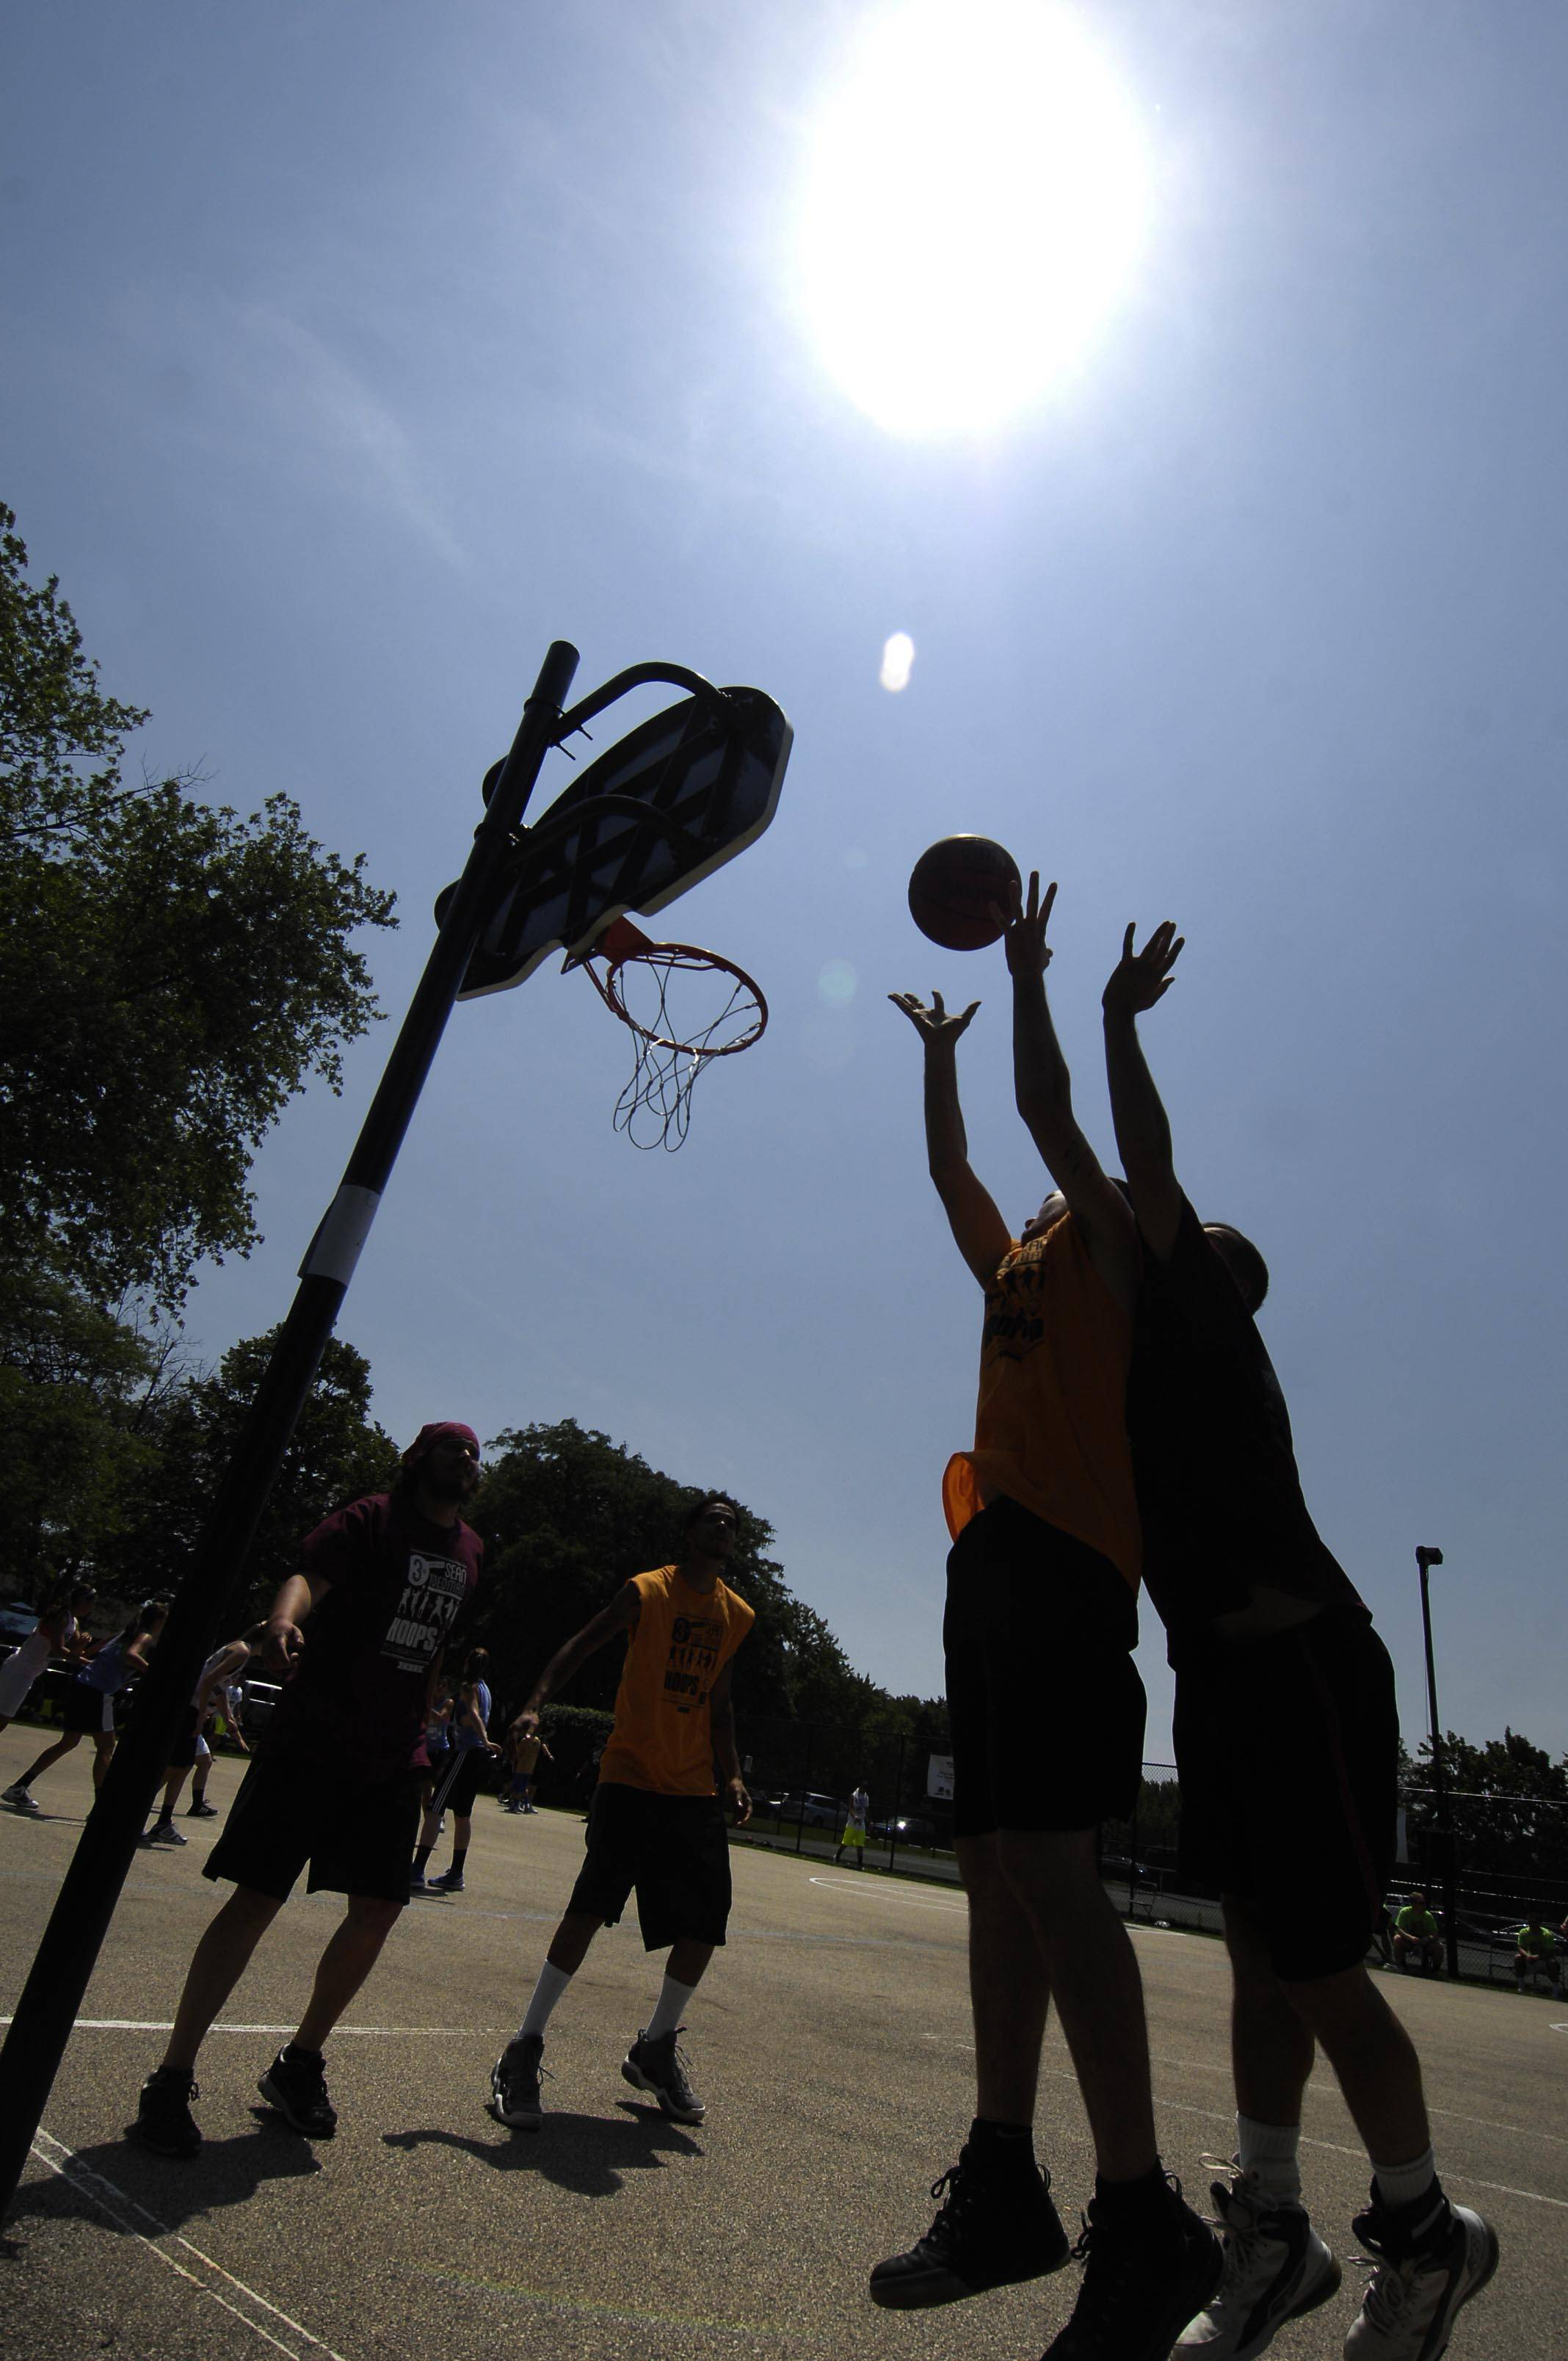 Players compete under the hot sun at last year's Sean Toedman Memorial 3-on-3 basketball tournament at Lions Park in East Dundee. This year's event will also honor Jamie Wise, a 22-year-old who had pediatric cancer and died of liver failure in April. The event, which also includes raffles, a wellness fair and live music, raises money for St. Jude Children's Research Hospital.